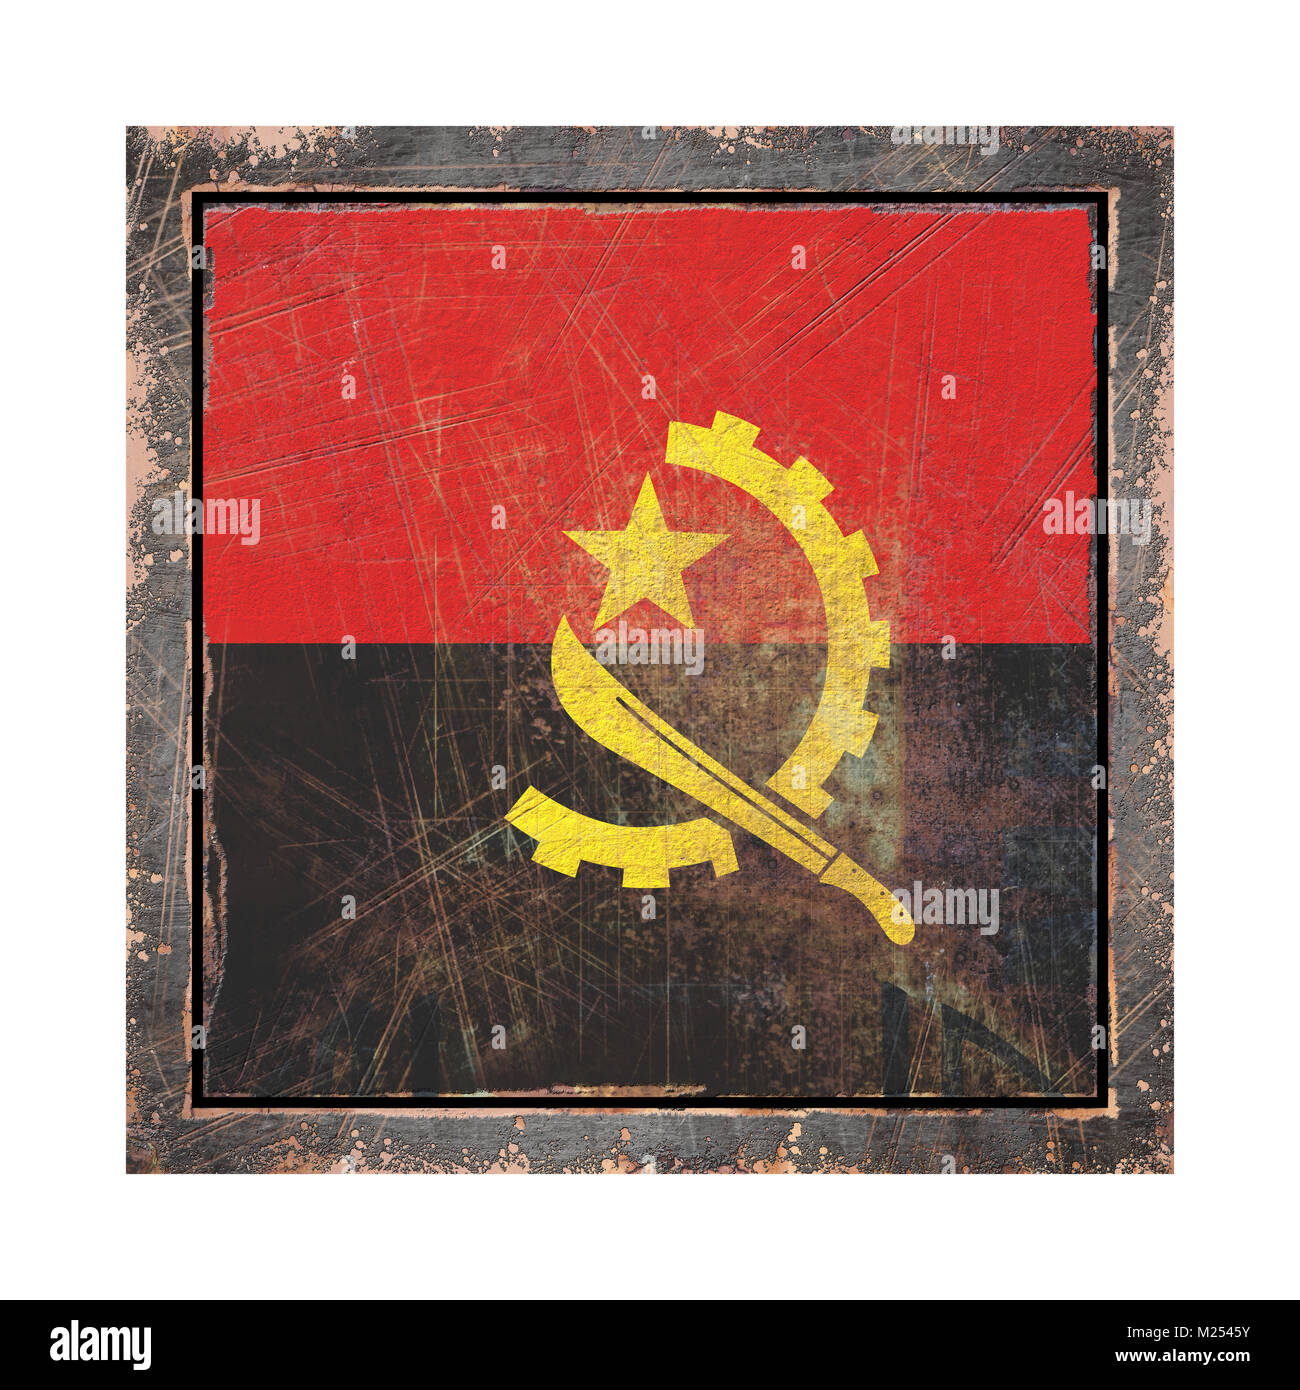 3d rendering of an Angola flag over a rusty metallic plate wit a rusty frame. Isolated on white background. - Stock Image